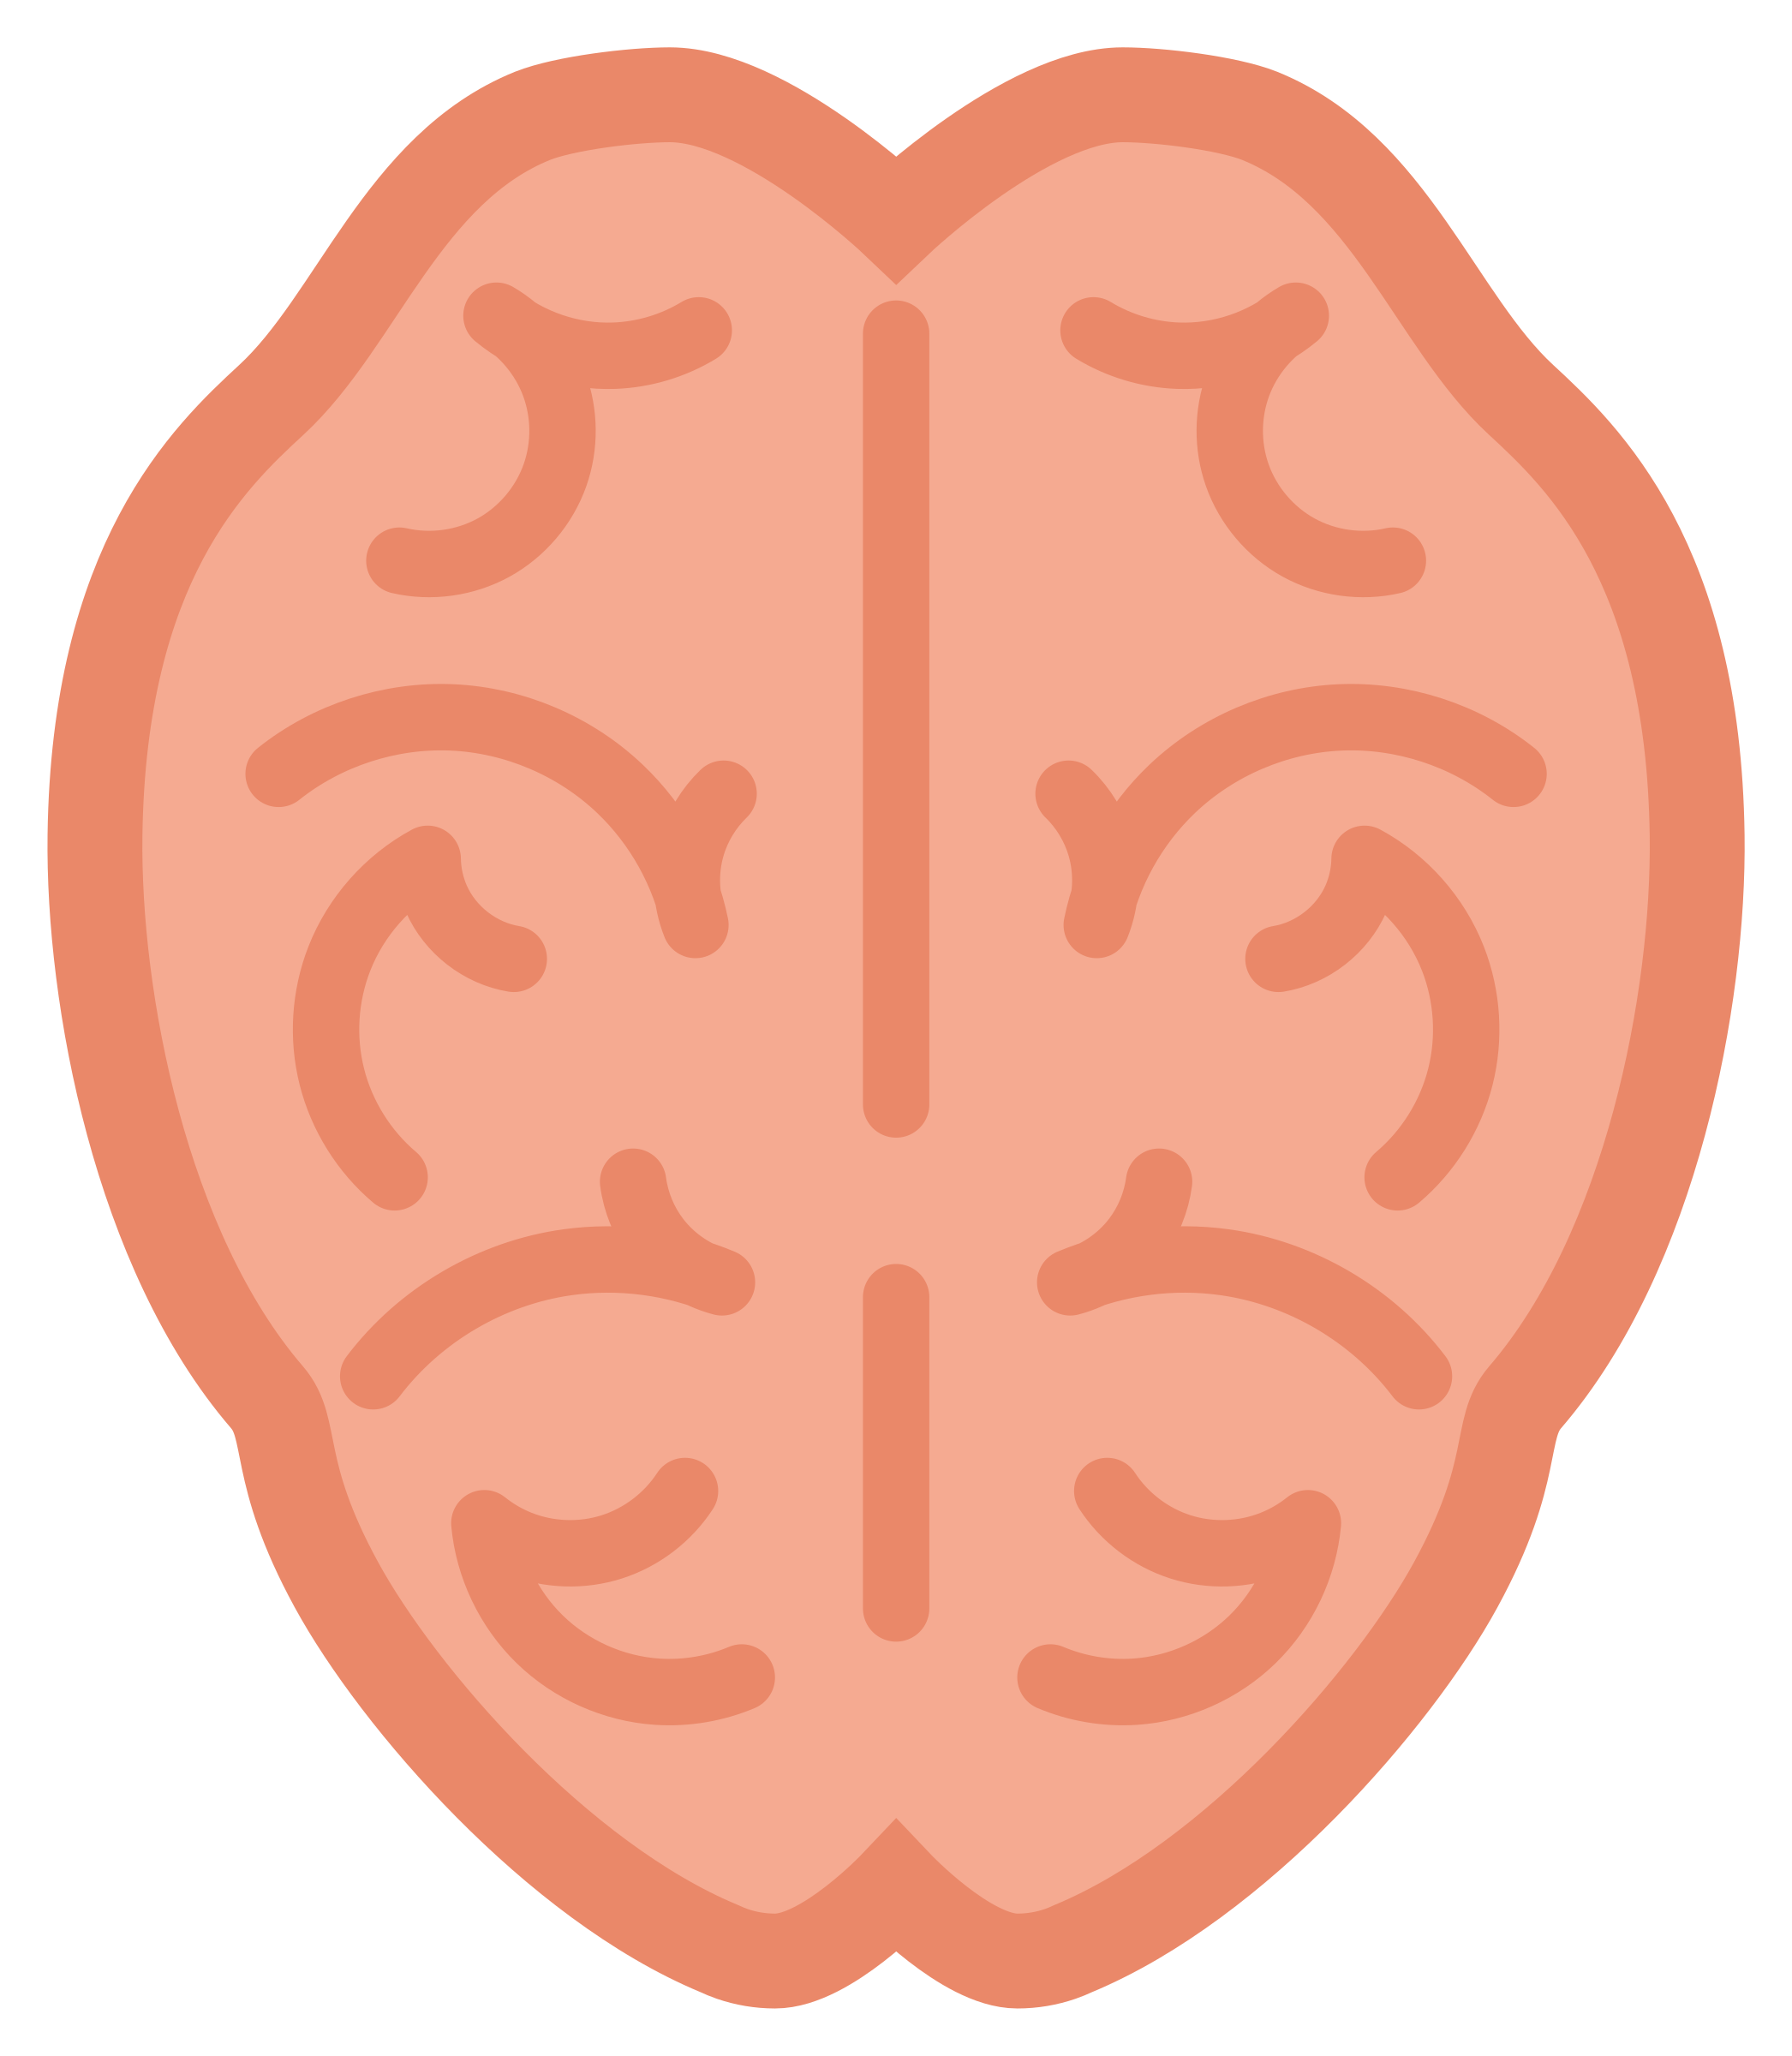 Brain clipart simple.  collection of high